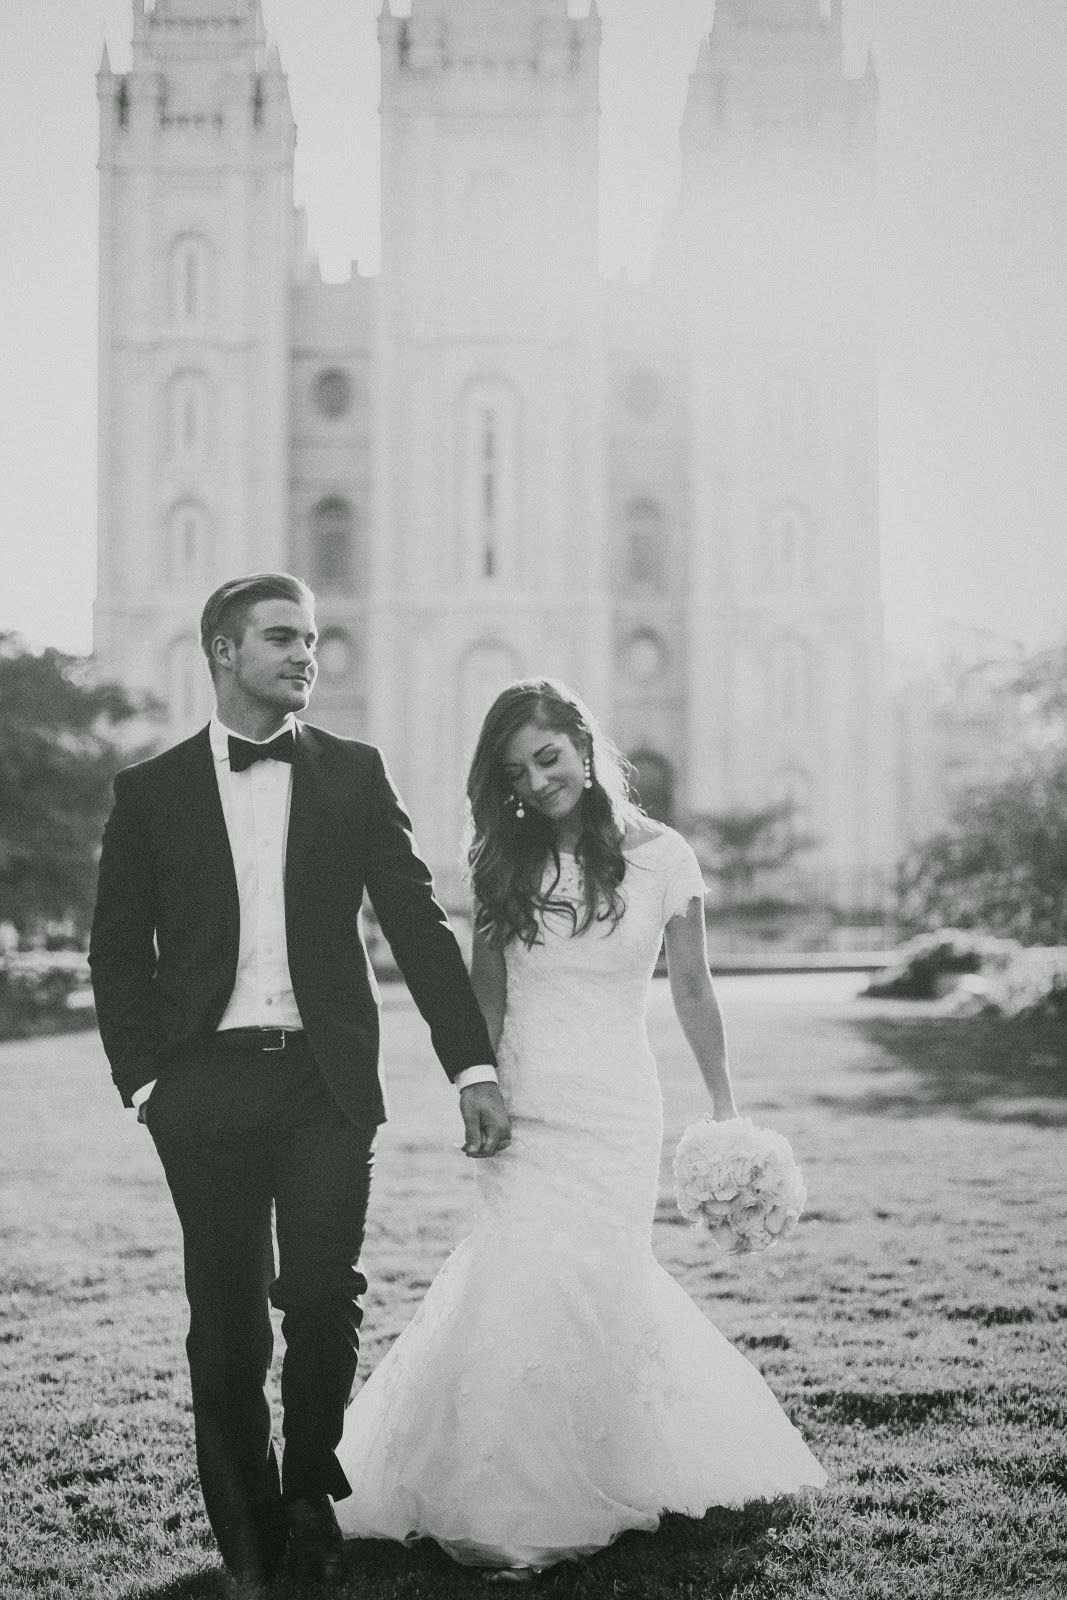 LDS Wedding Couple Photography | Eternity | Pinterest | Verlieben